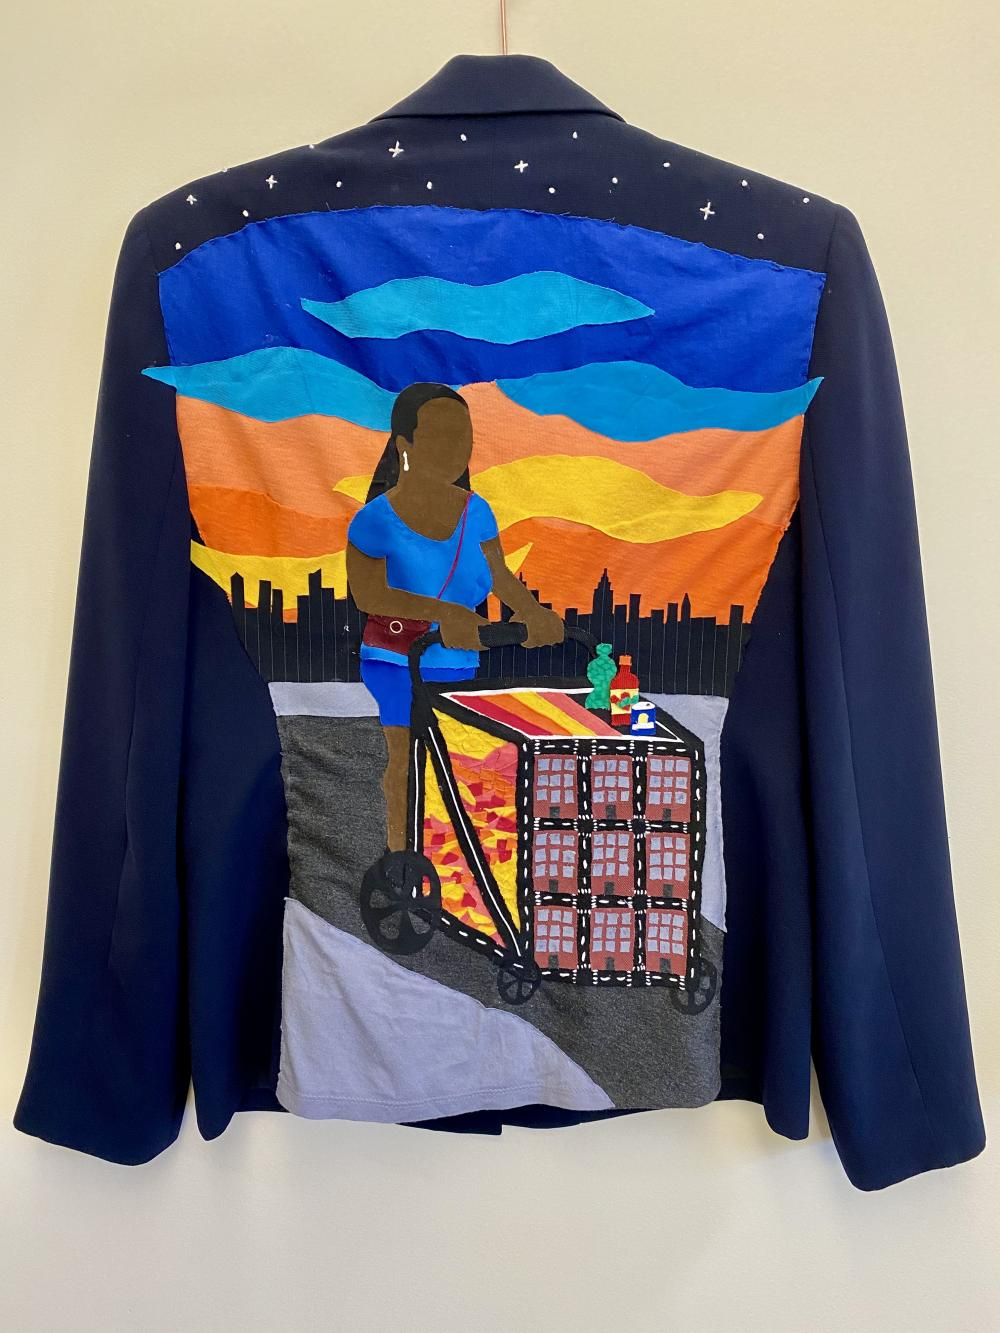 The back of a navy blazer with a sunrise and cityscape background. A woman pushing a fruit cart in the foreground.